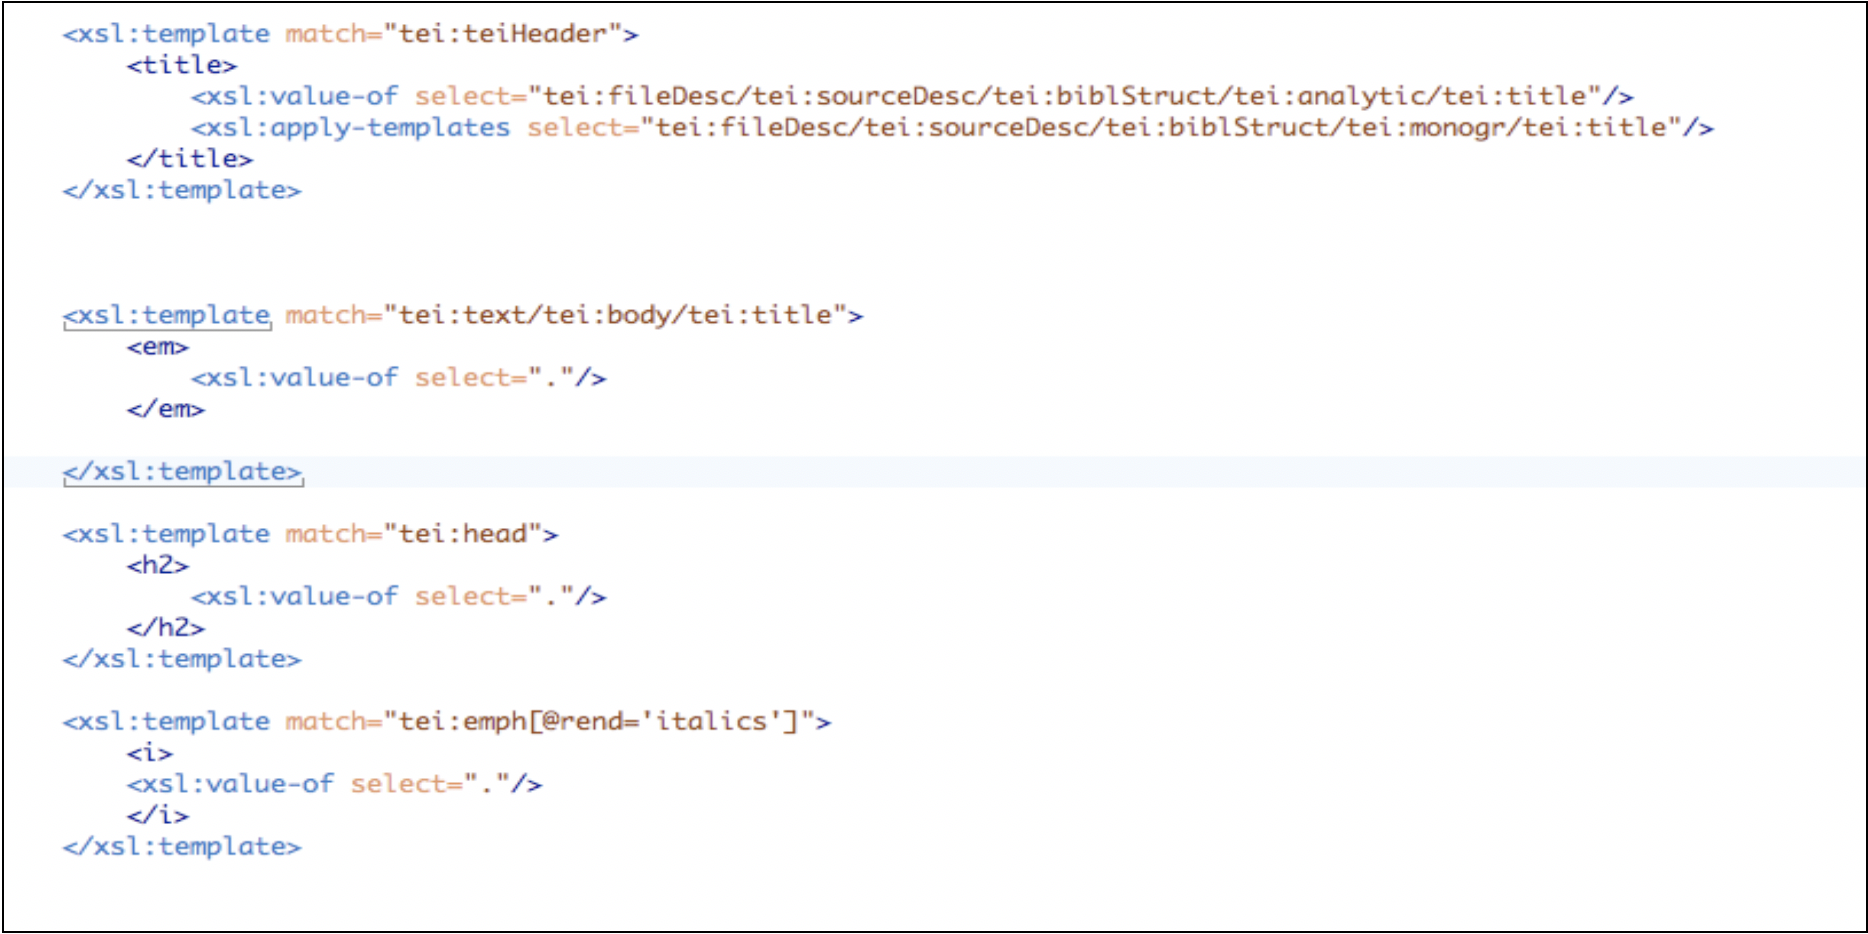 A Screen shot of the xslt used to transform xml into html.